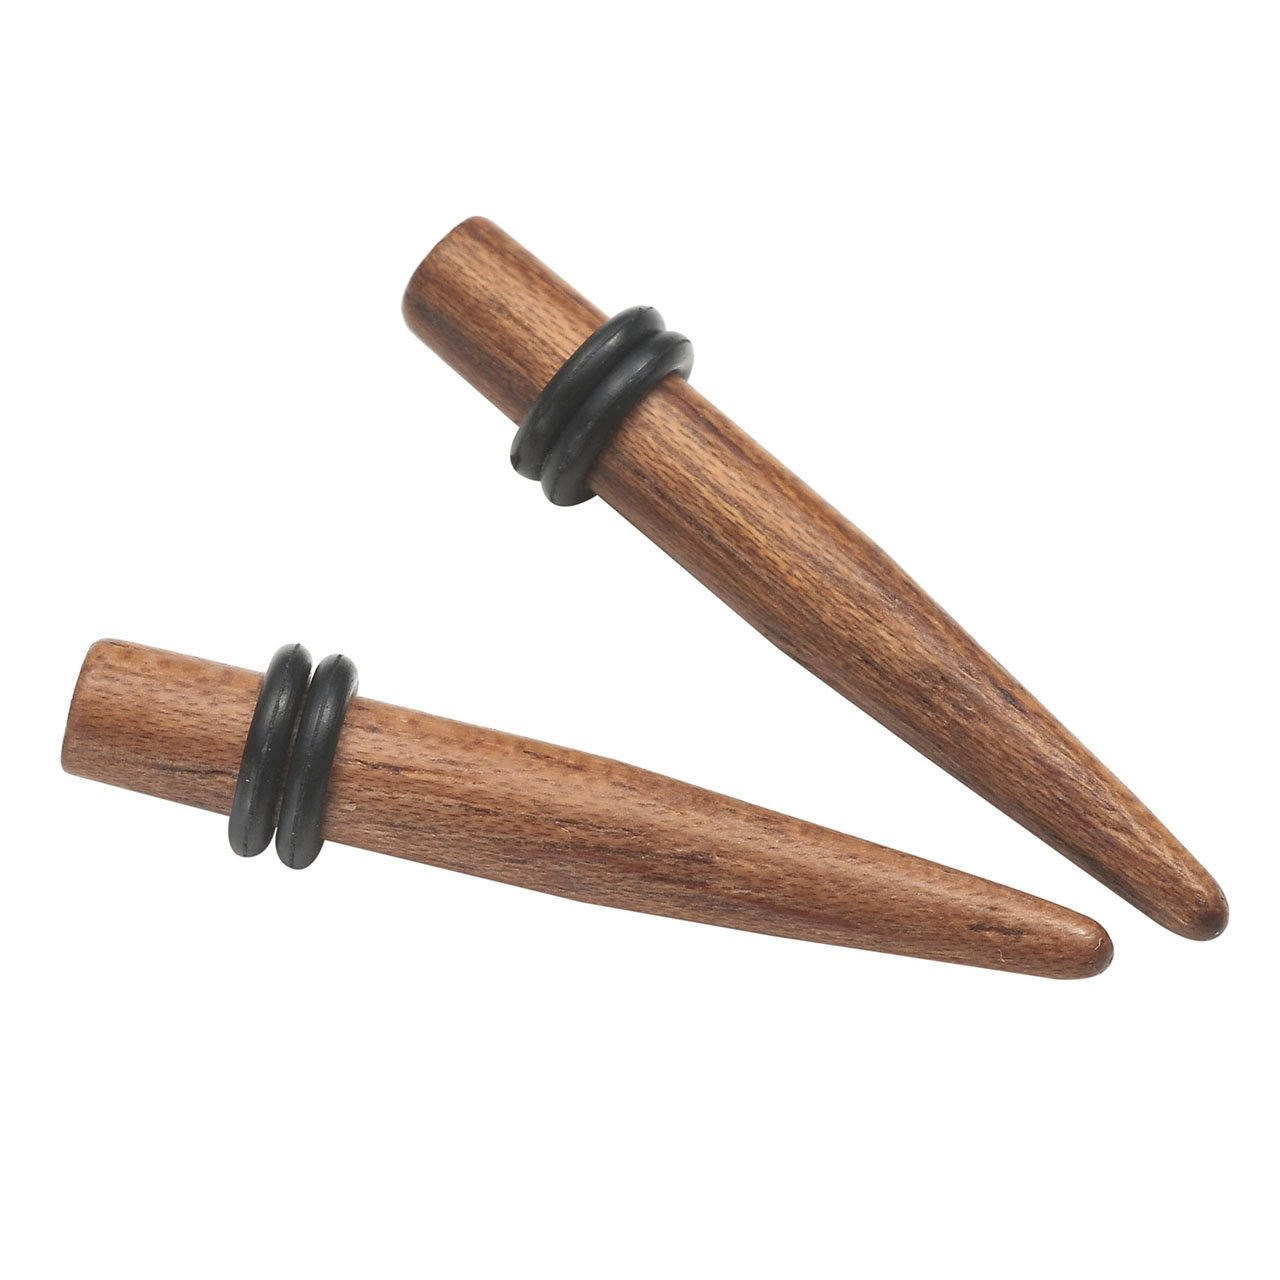 BOPREINA 2PCS//8PCS Organic Rose Wood Ear Tapers Natural Ear Gauges Stretchers Kits Ear Plugs with Silicone O-ring 4G//2G//0G//00G KKUS003358